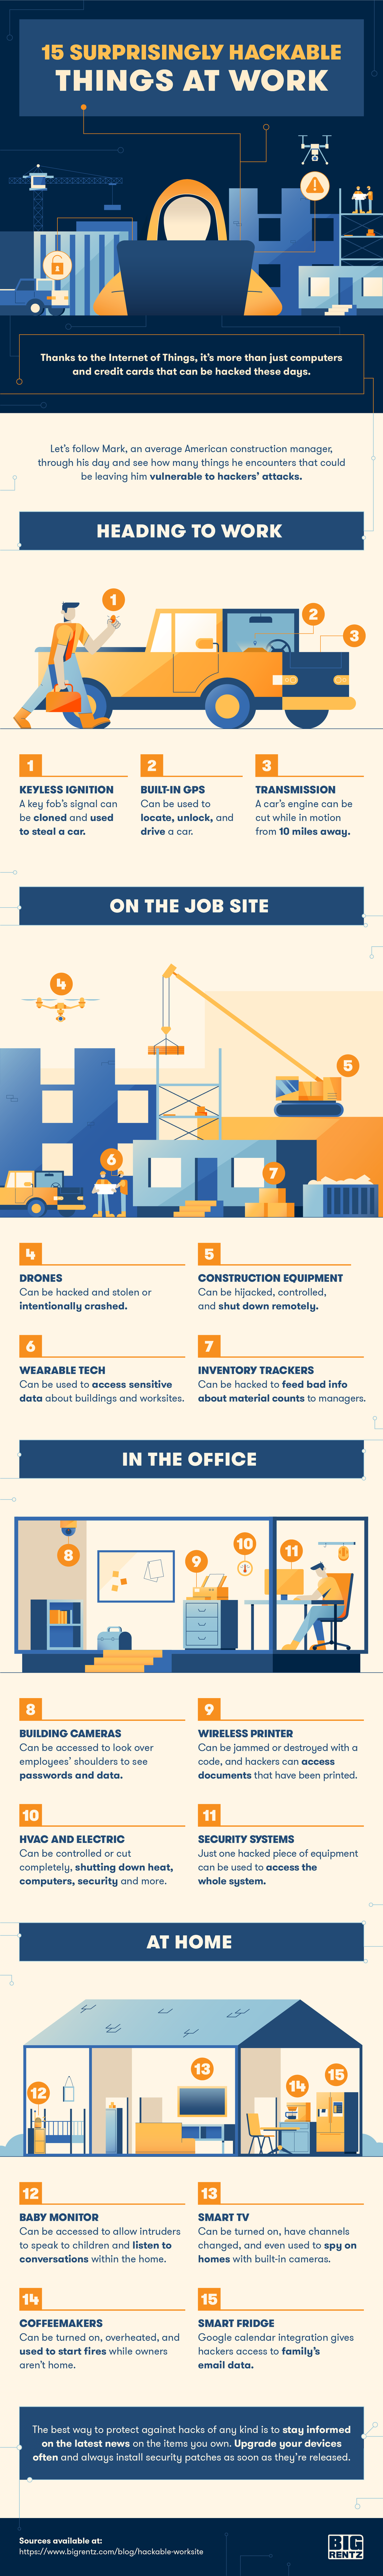 wild ways hackers hack work sites infographic